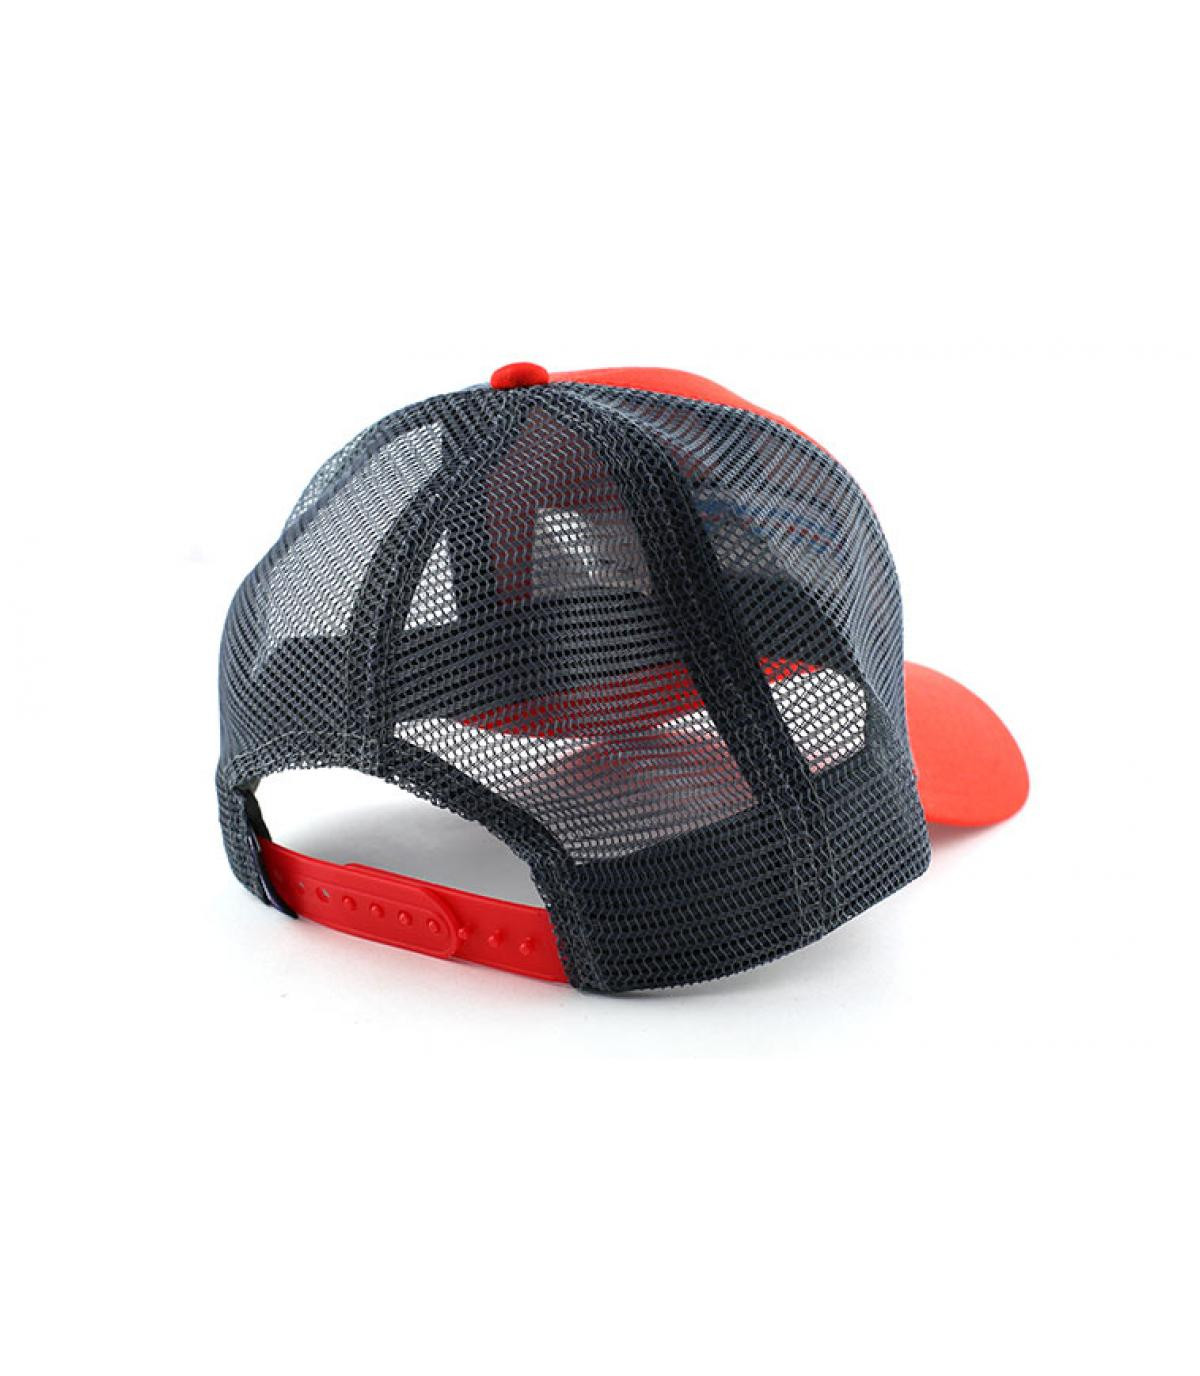 Détails P6 logo trucker hat french red - image 5